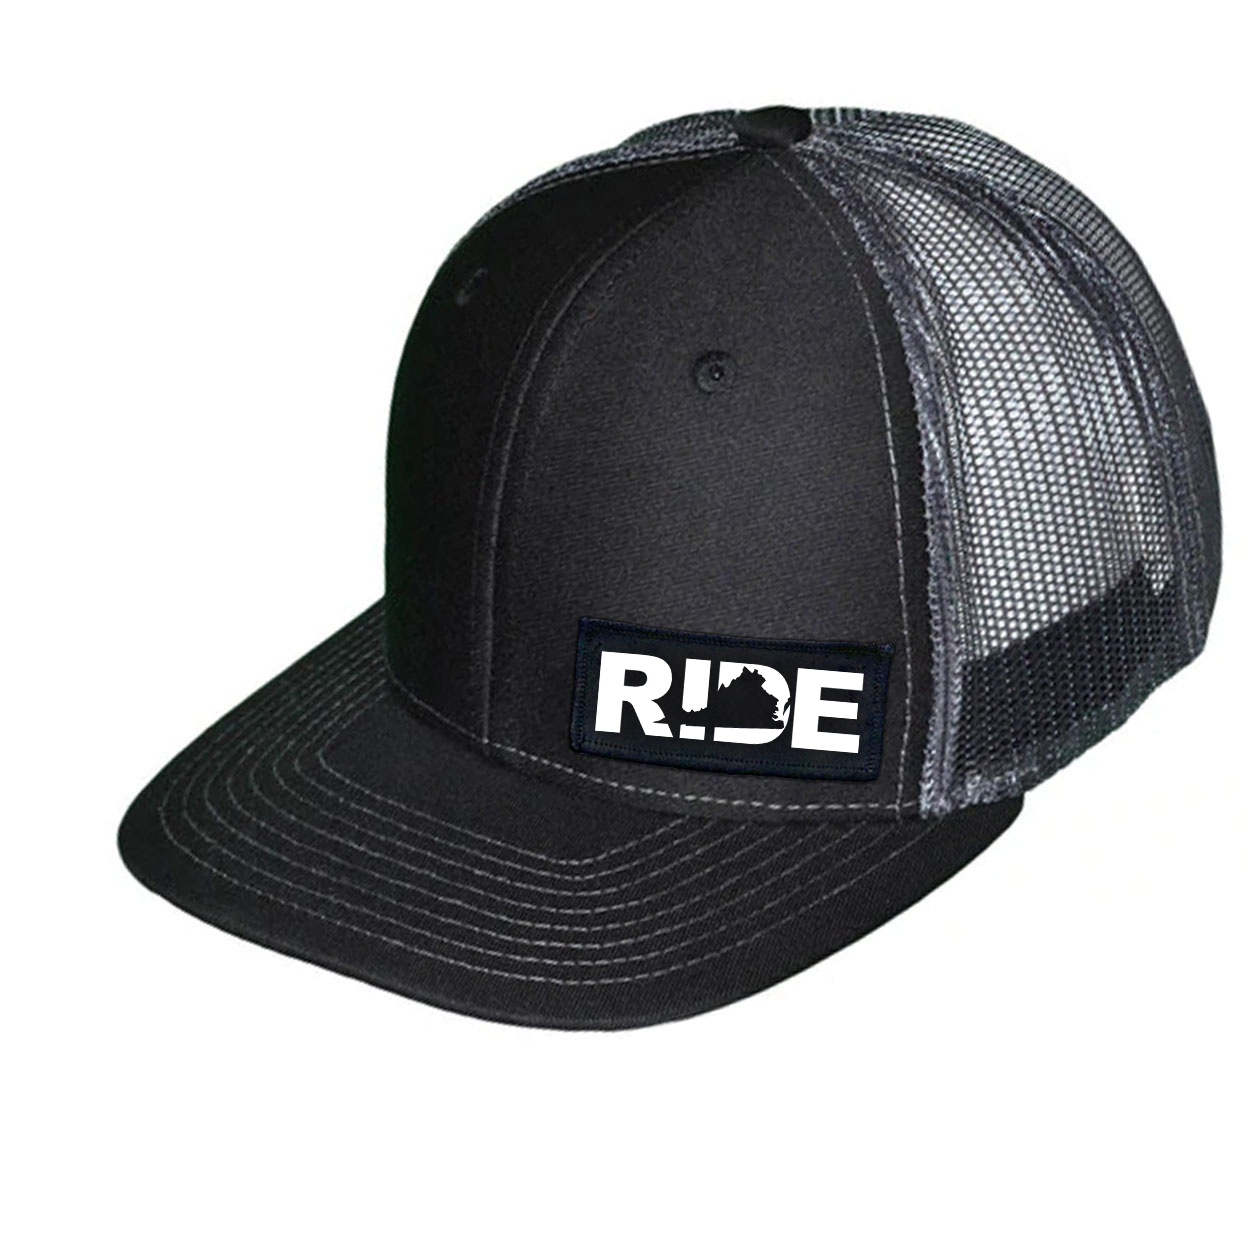 Ride Virginia Night Out Woven Patch Snapback Trucker Hat Black/Dark Gray (White Logo)